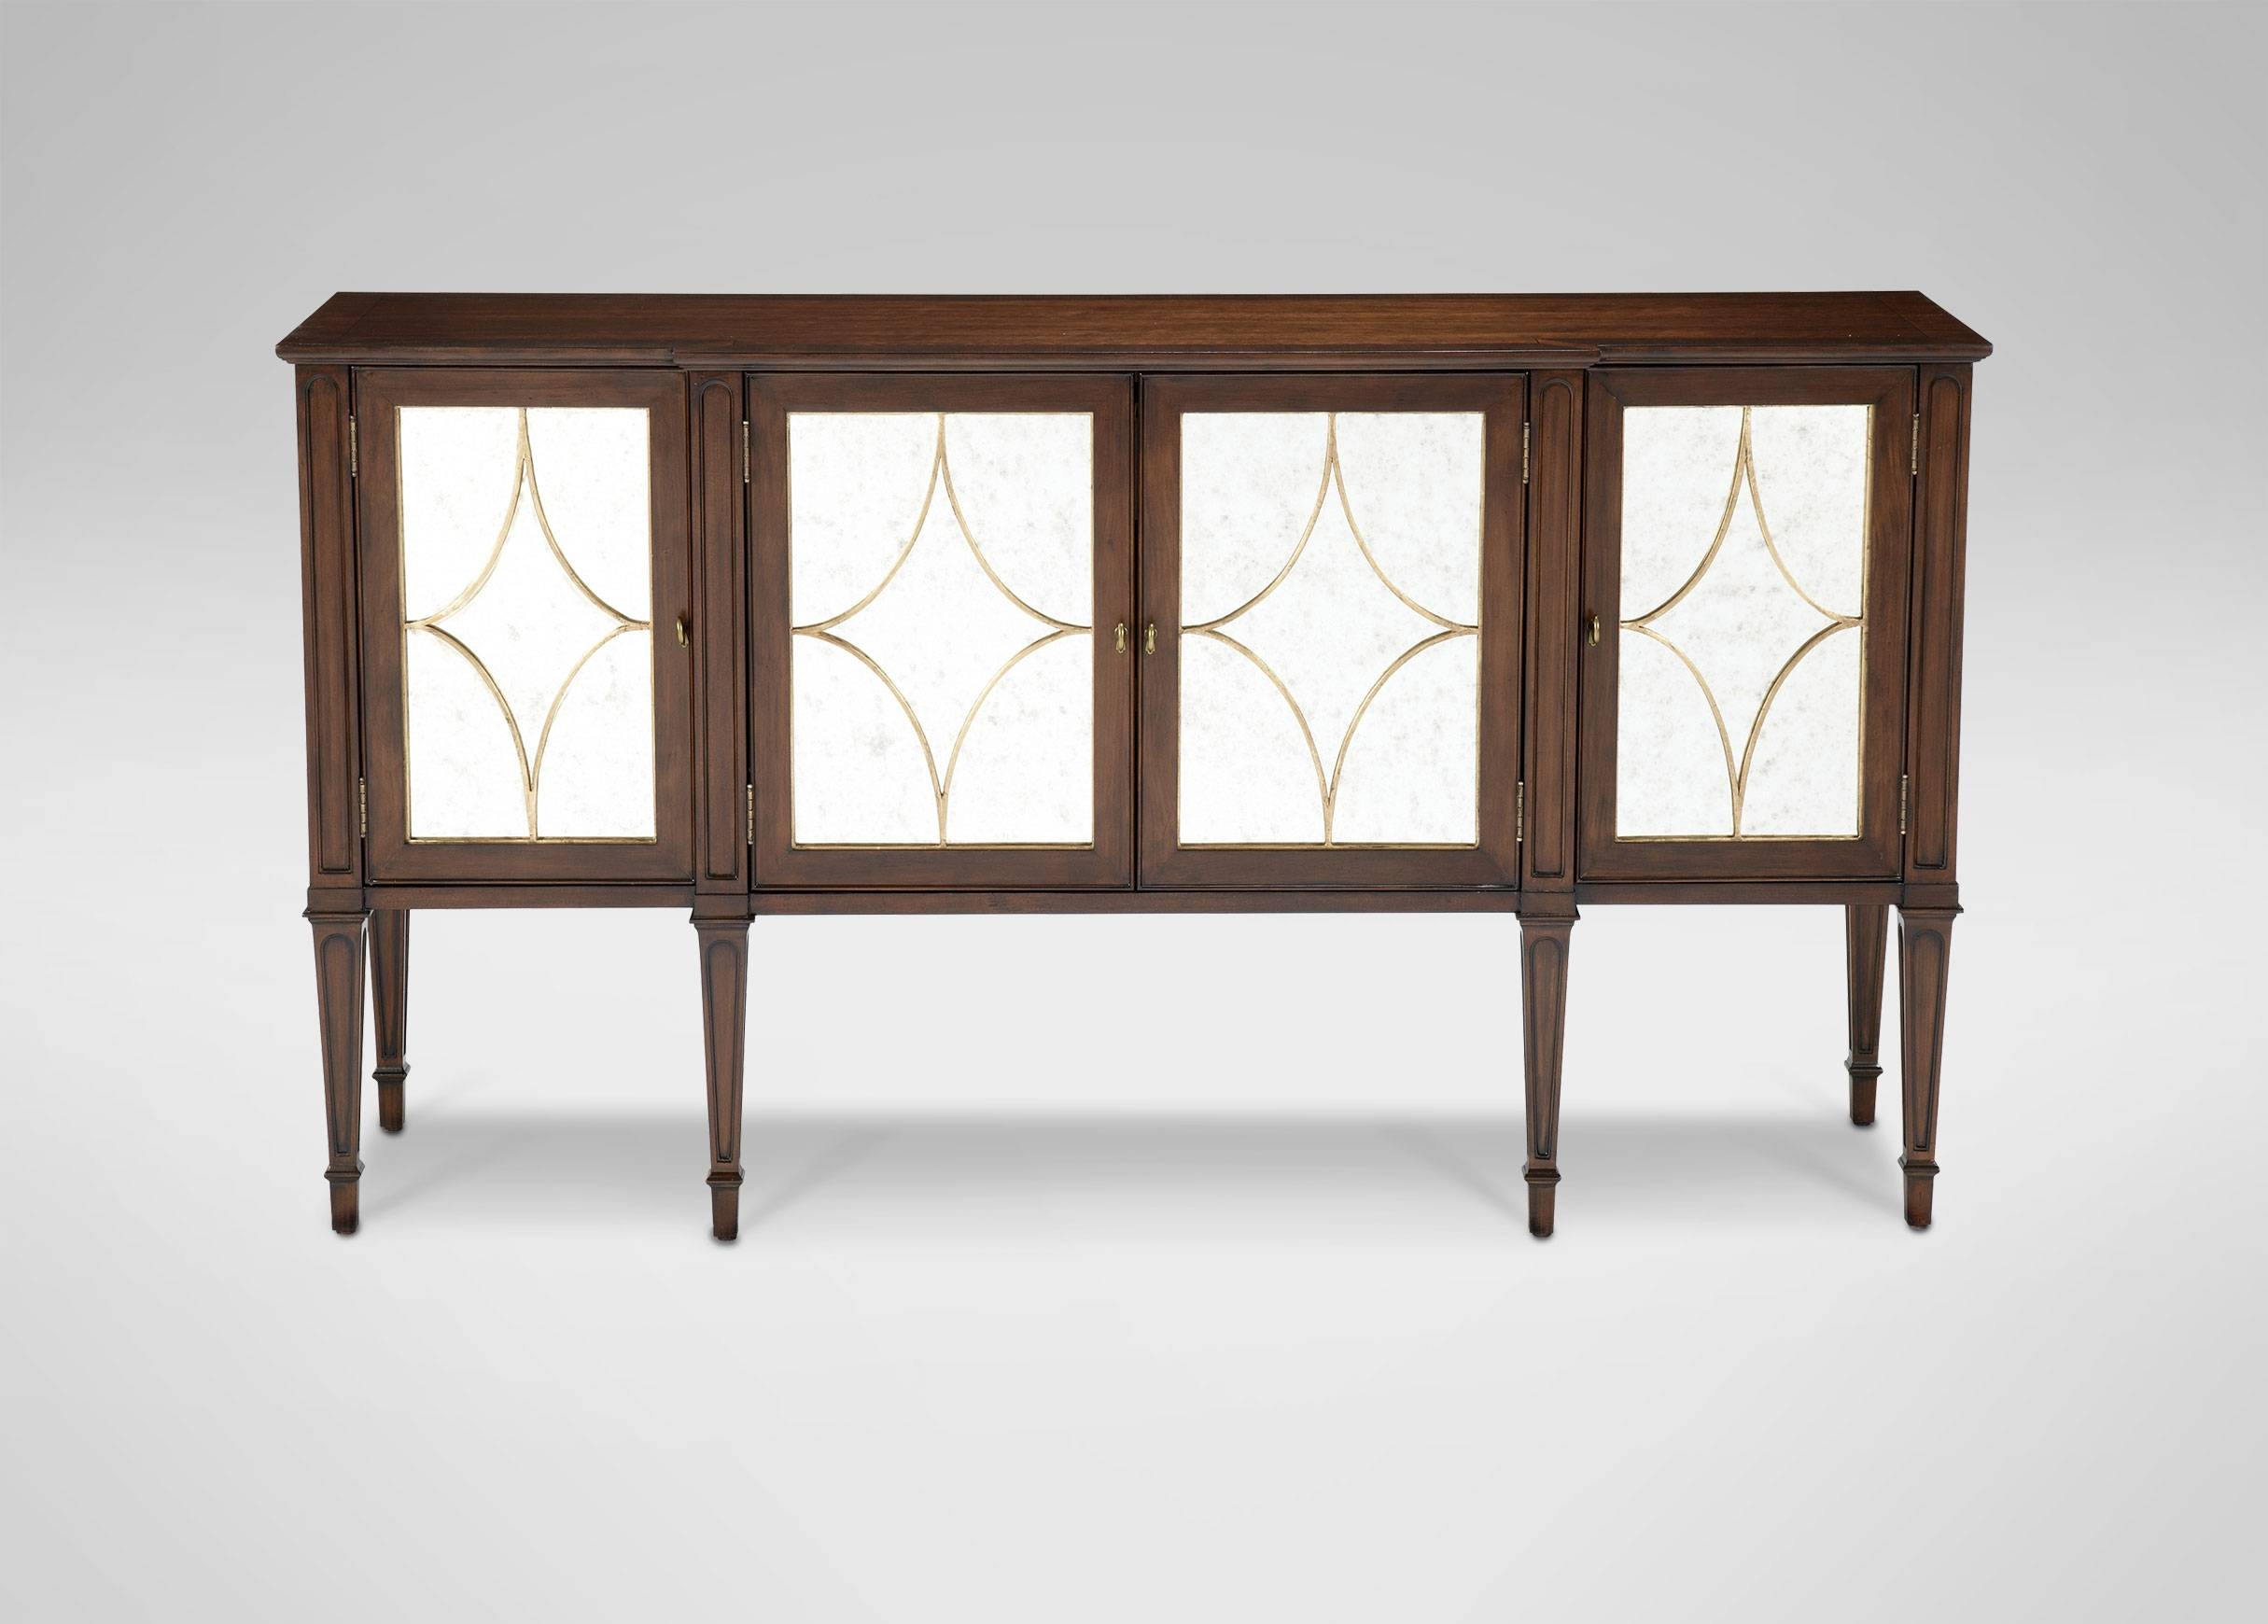 Norwich Sideboard | Buffets, Sideboards & Servers Throughout Most Popular Ethan Allen Sideboards (#7 of 15)